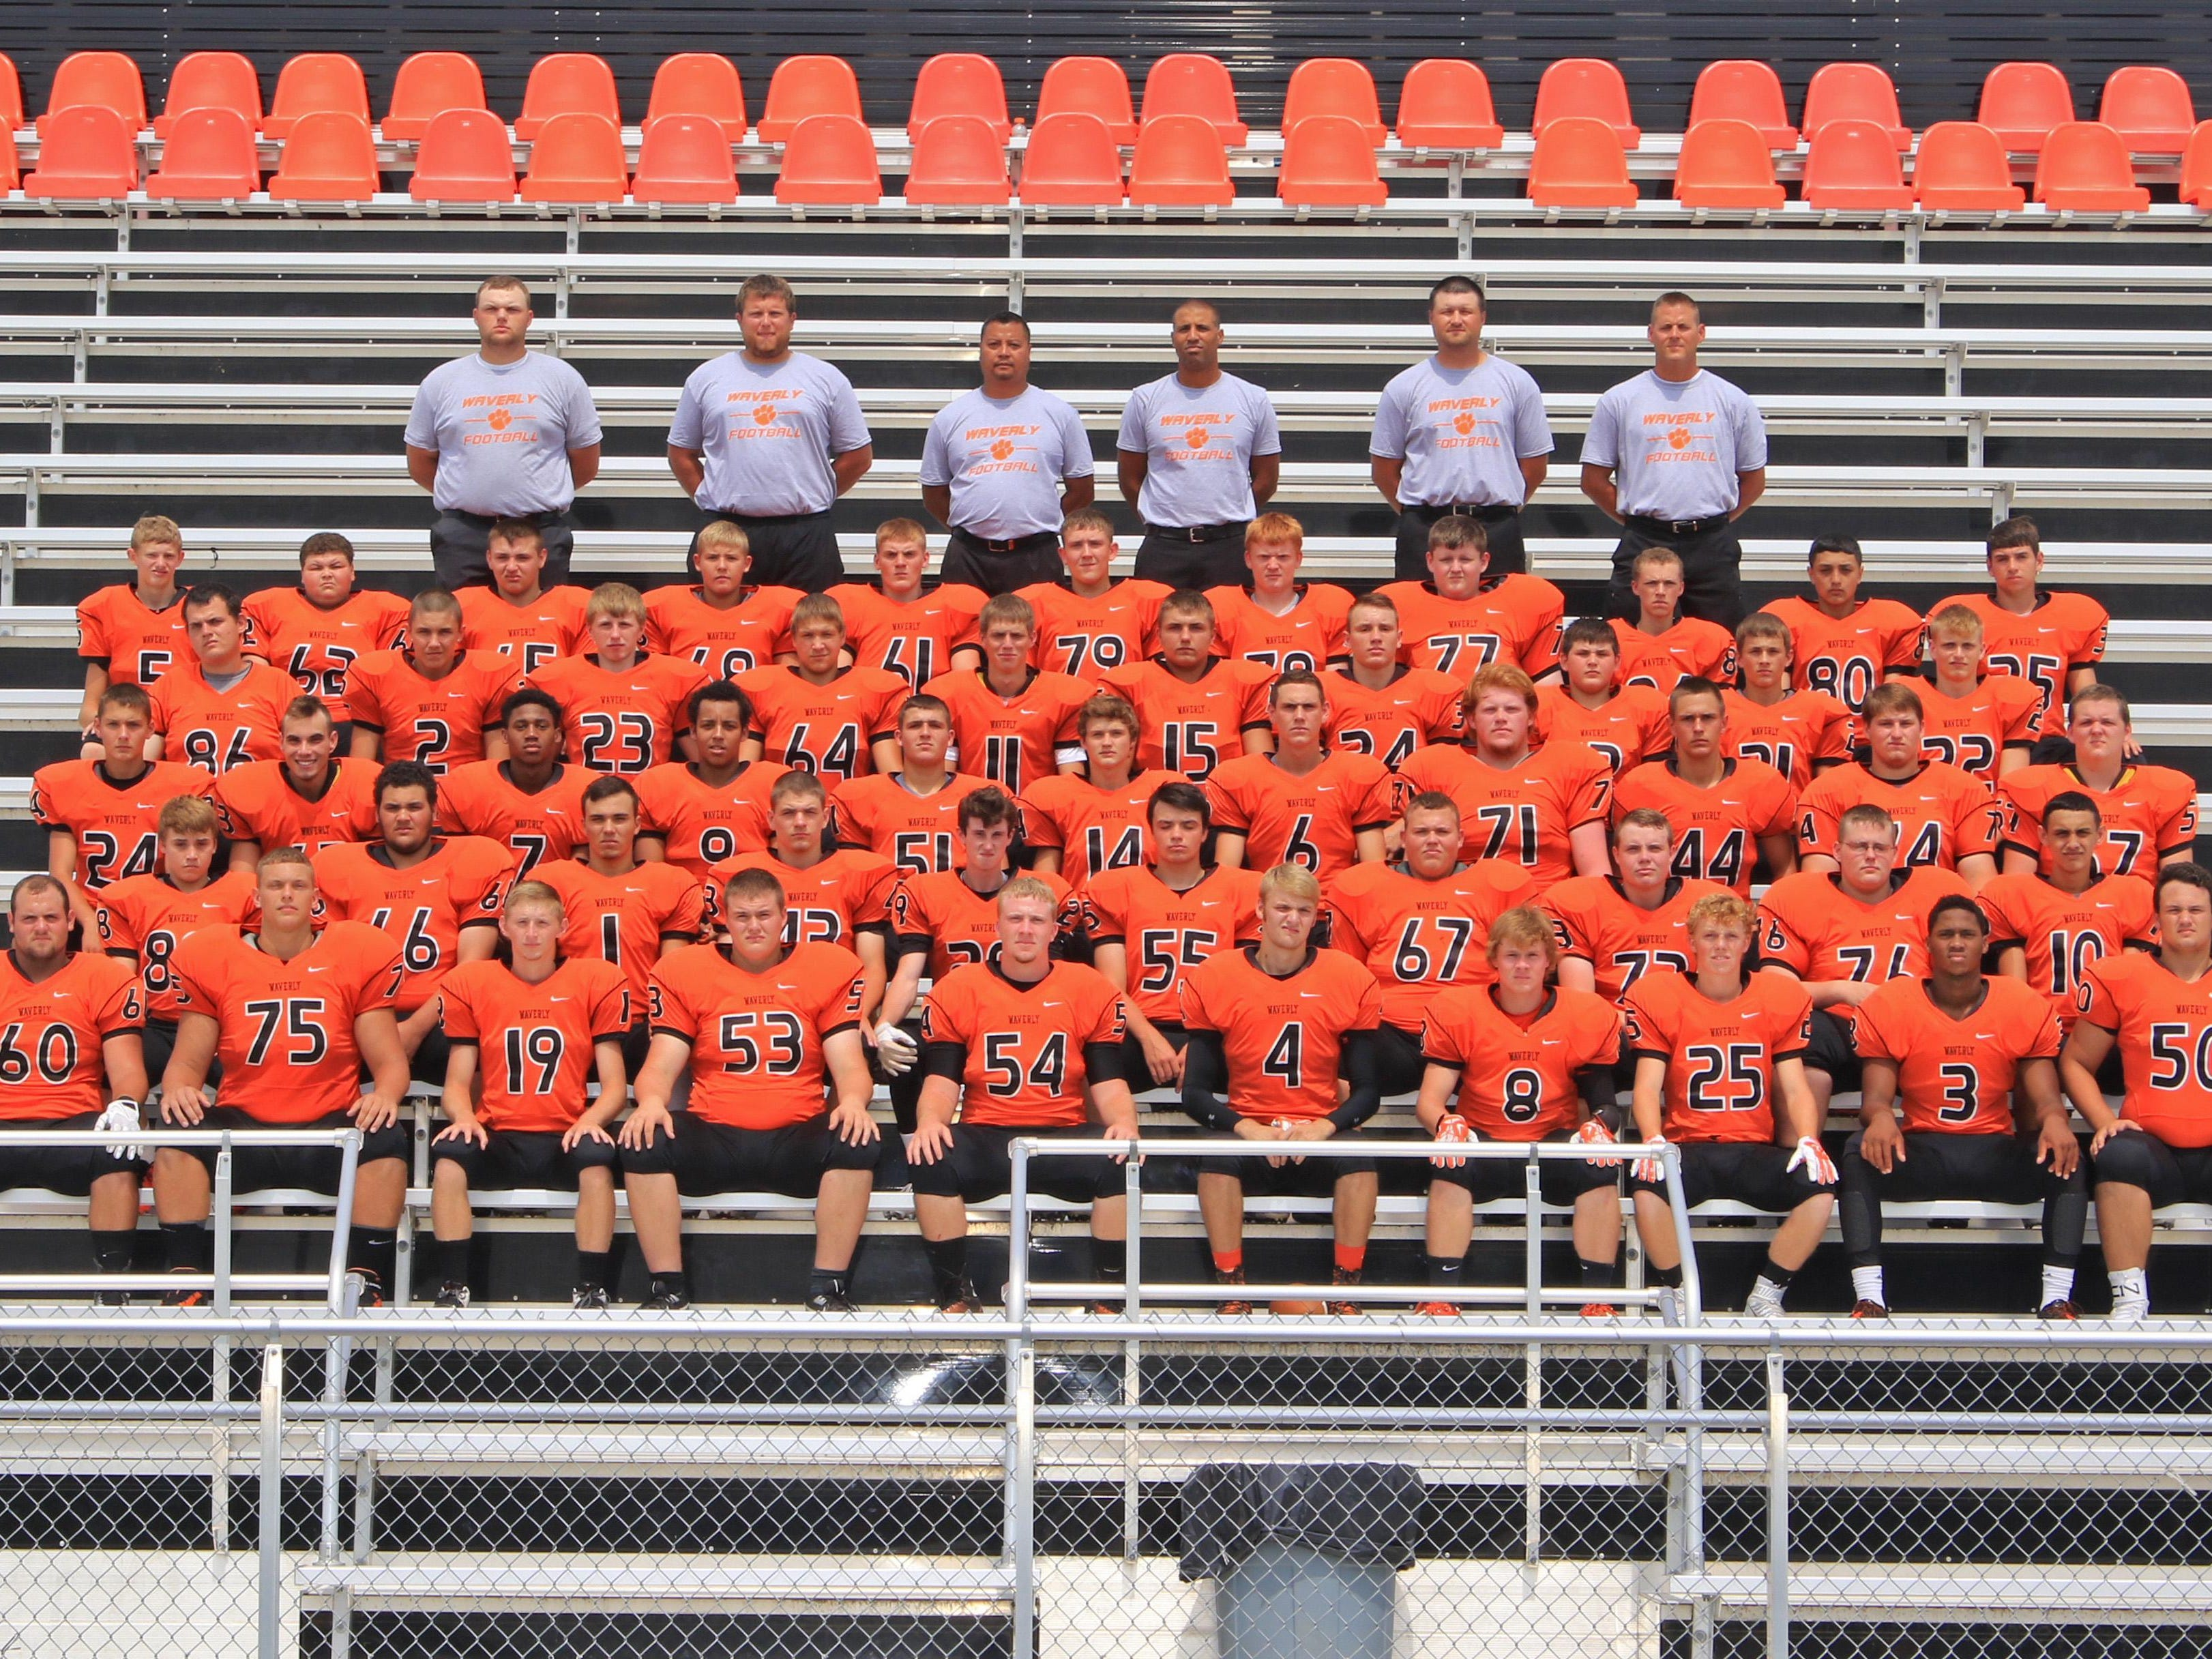 The 2015 Waverly Tigers